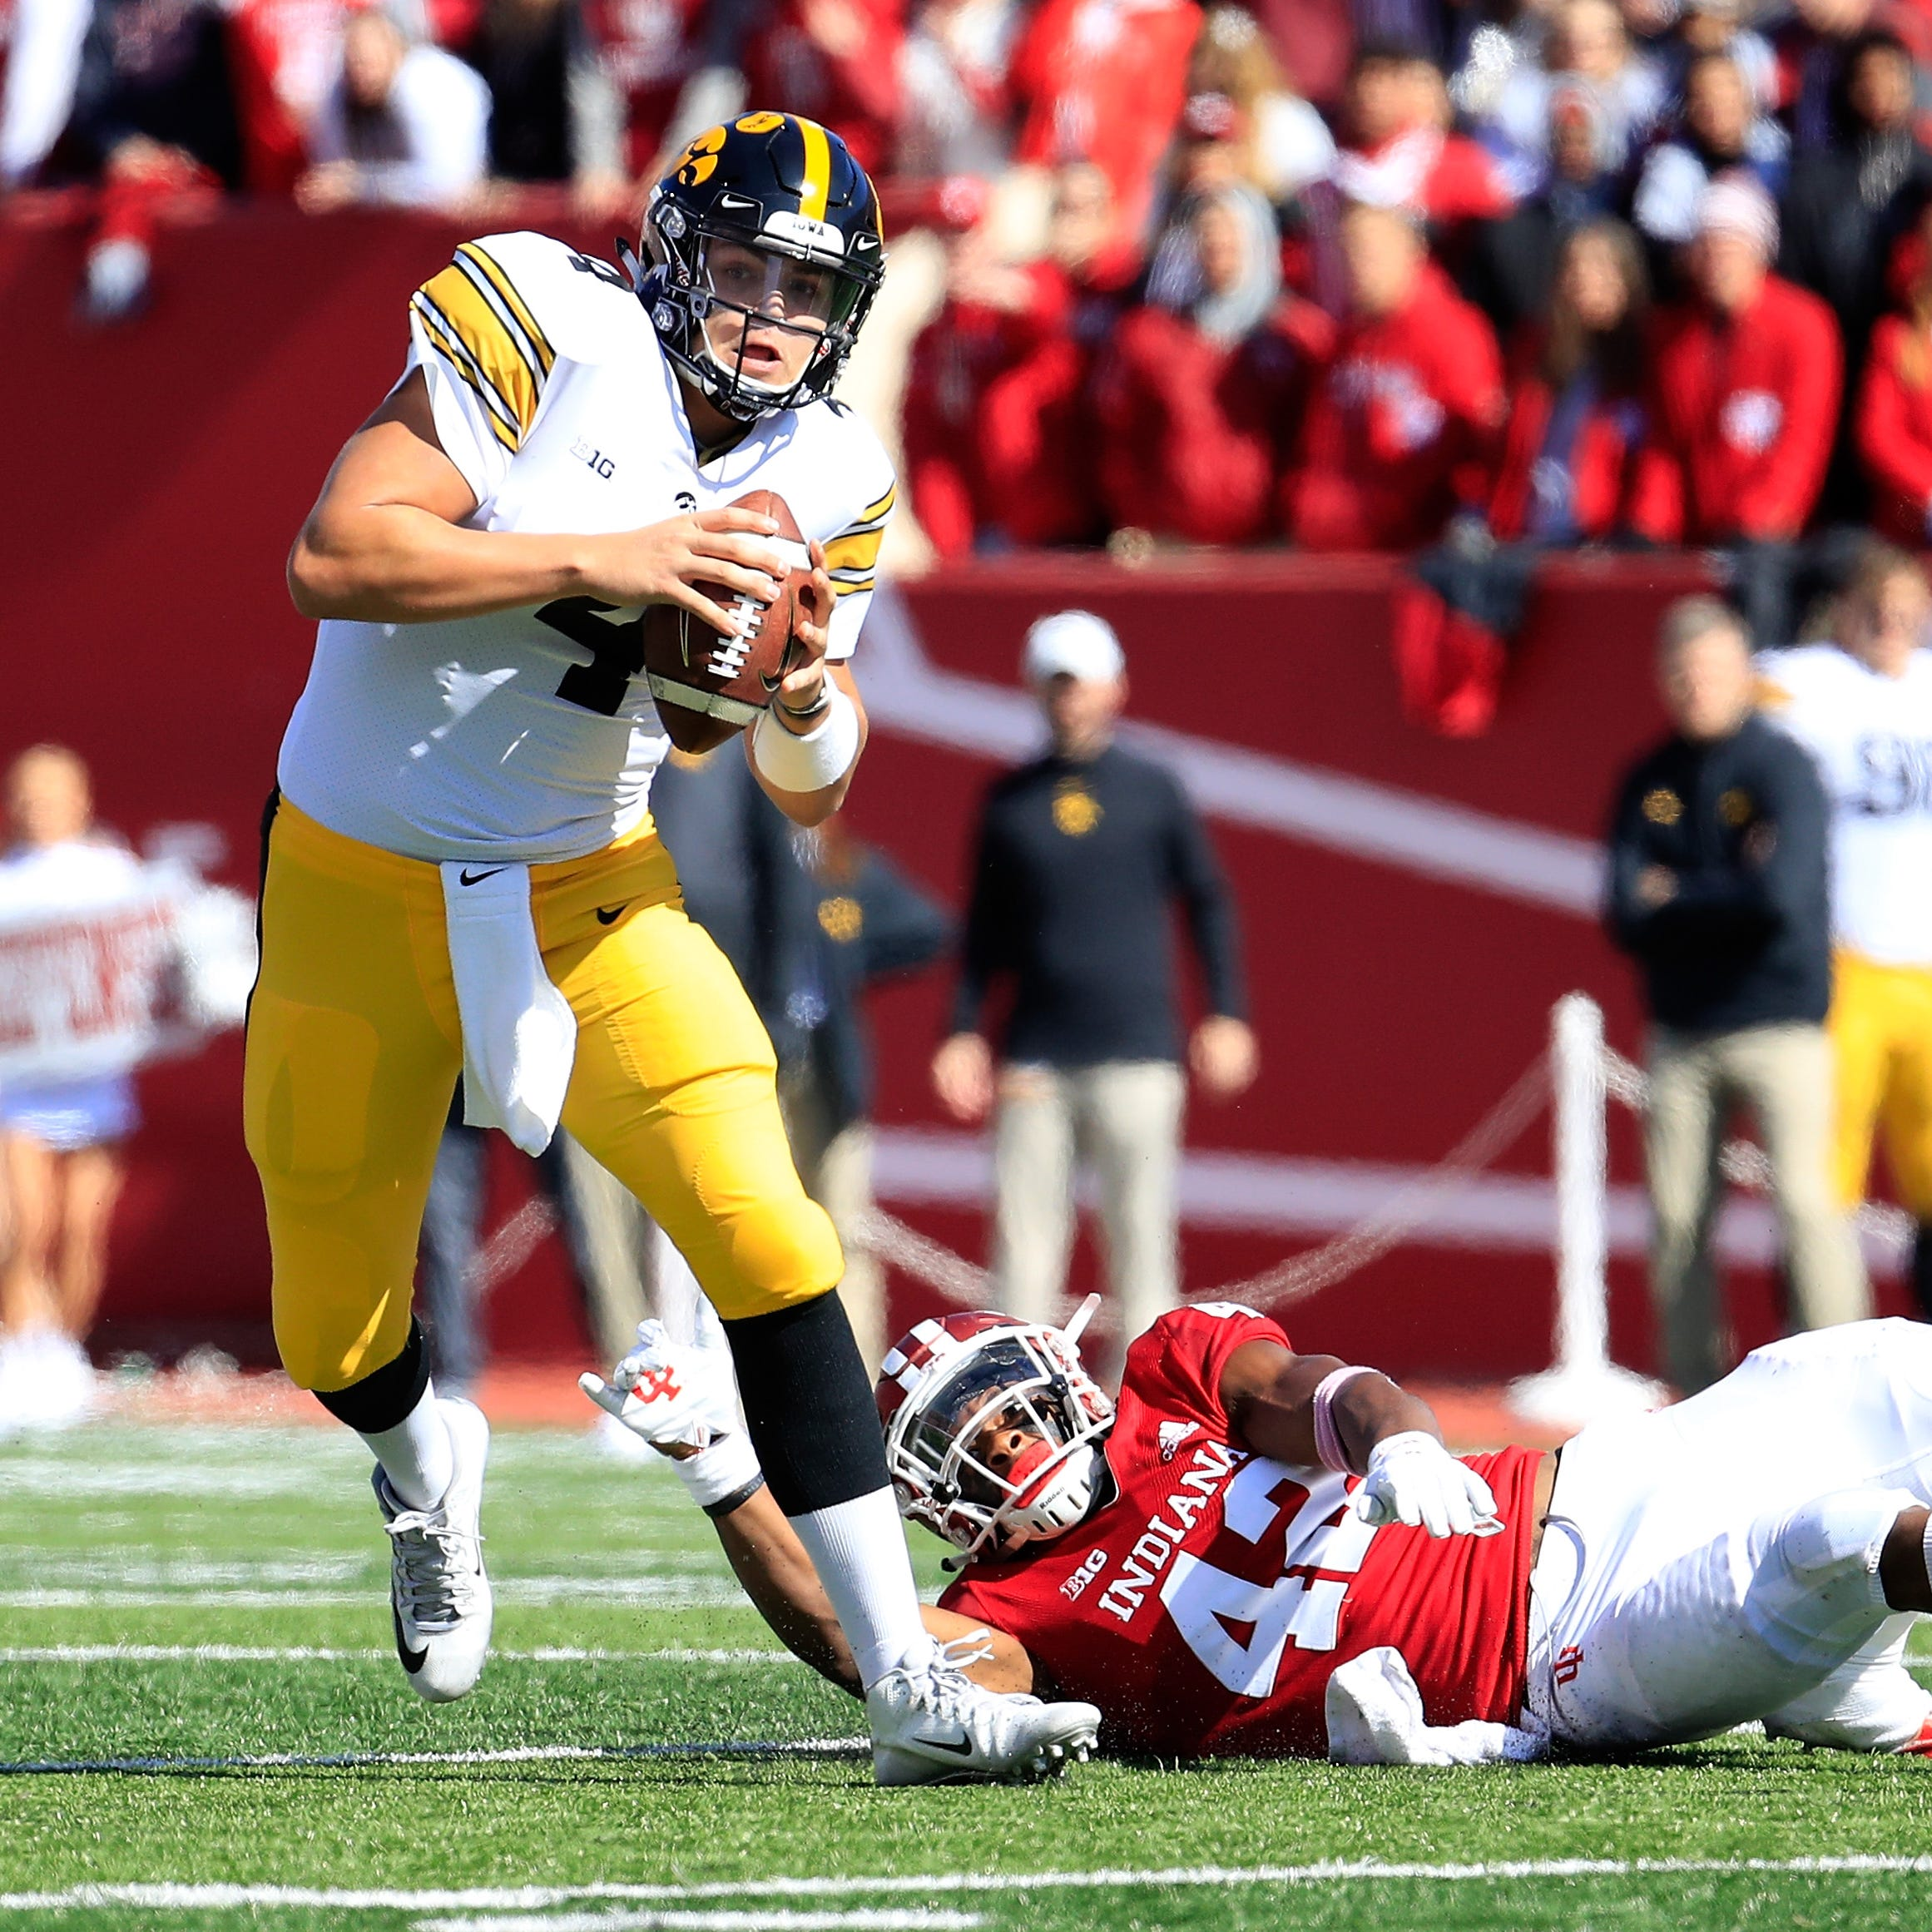 Iowa quarterback Nate Stanley collects Big Ten honors after a 6-TD game